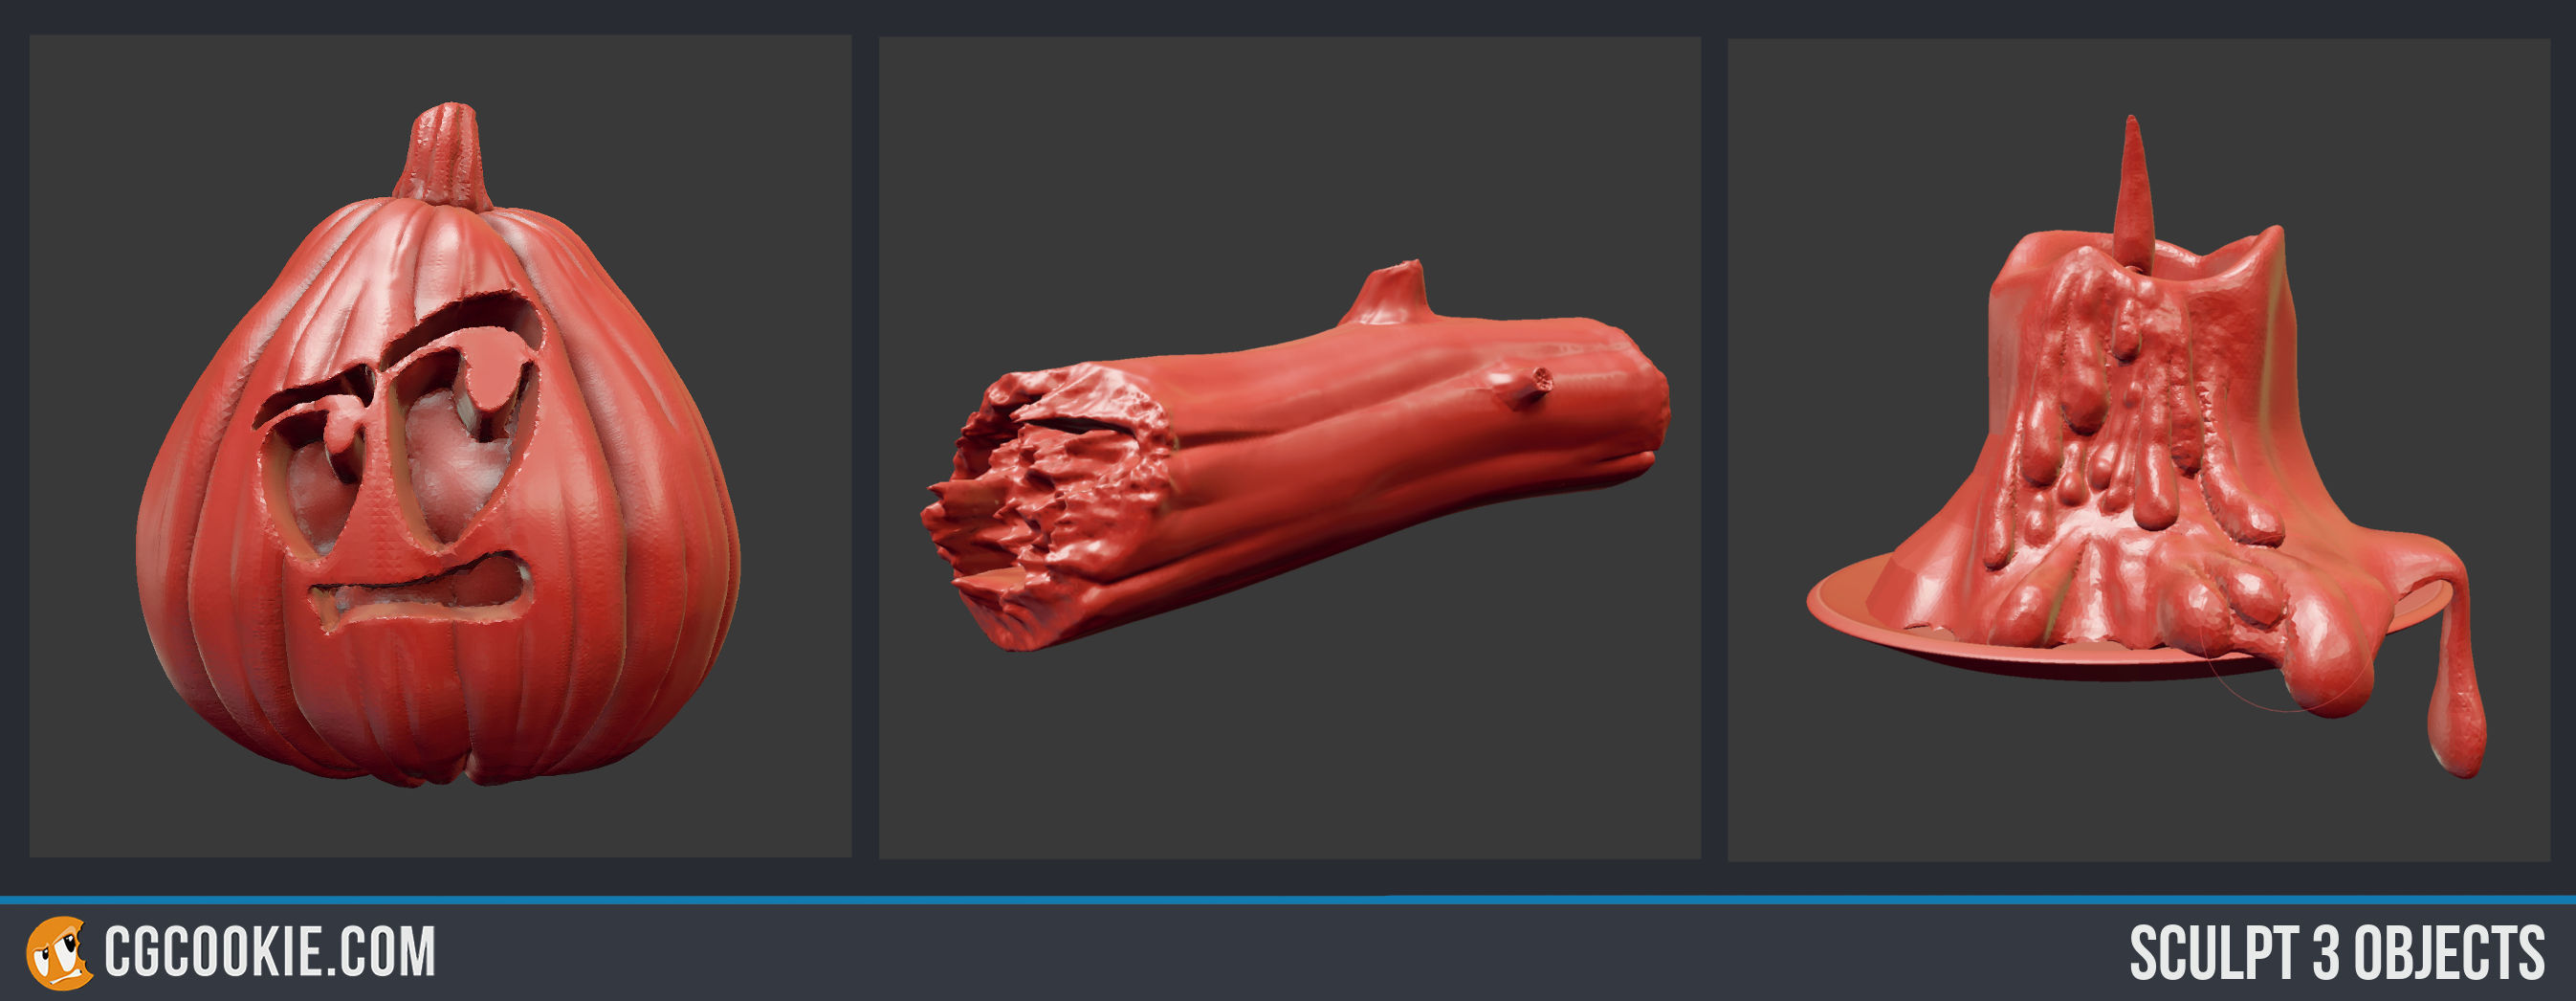 Sculpt 3 Objects - CG Cookie